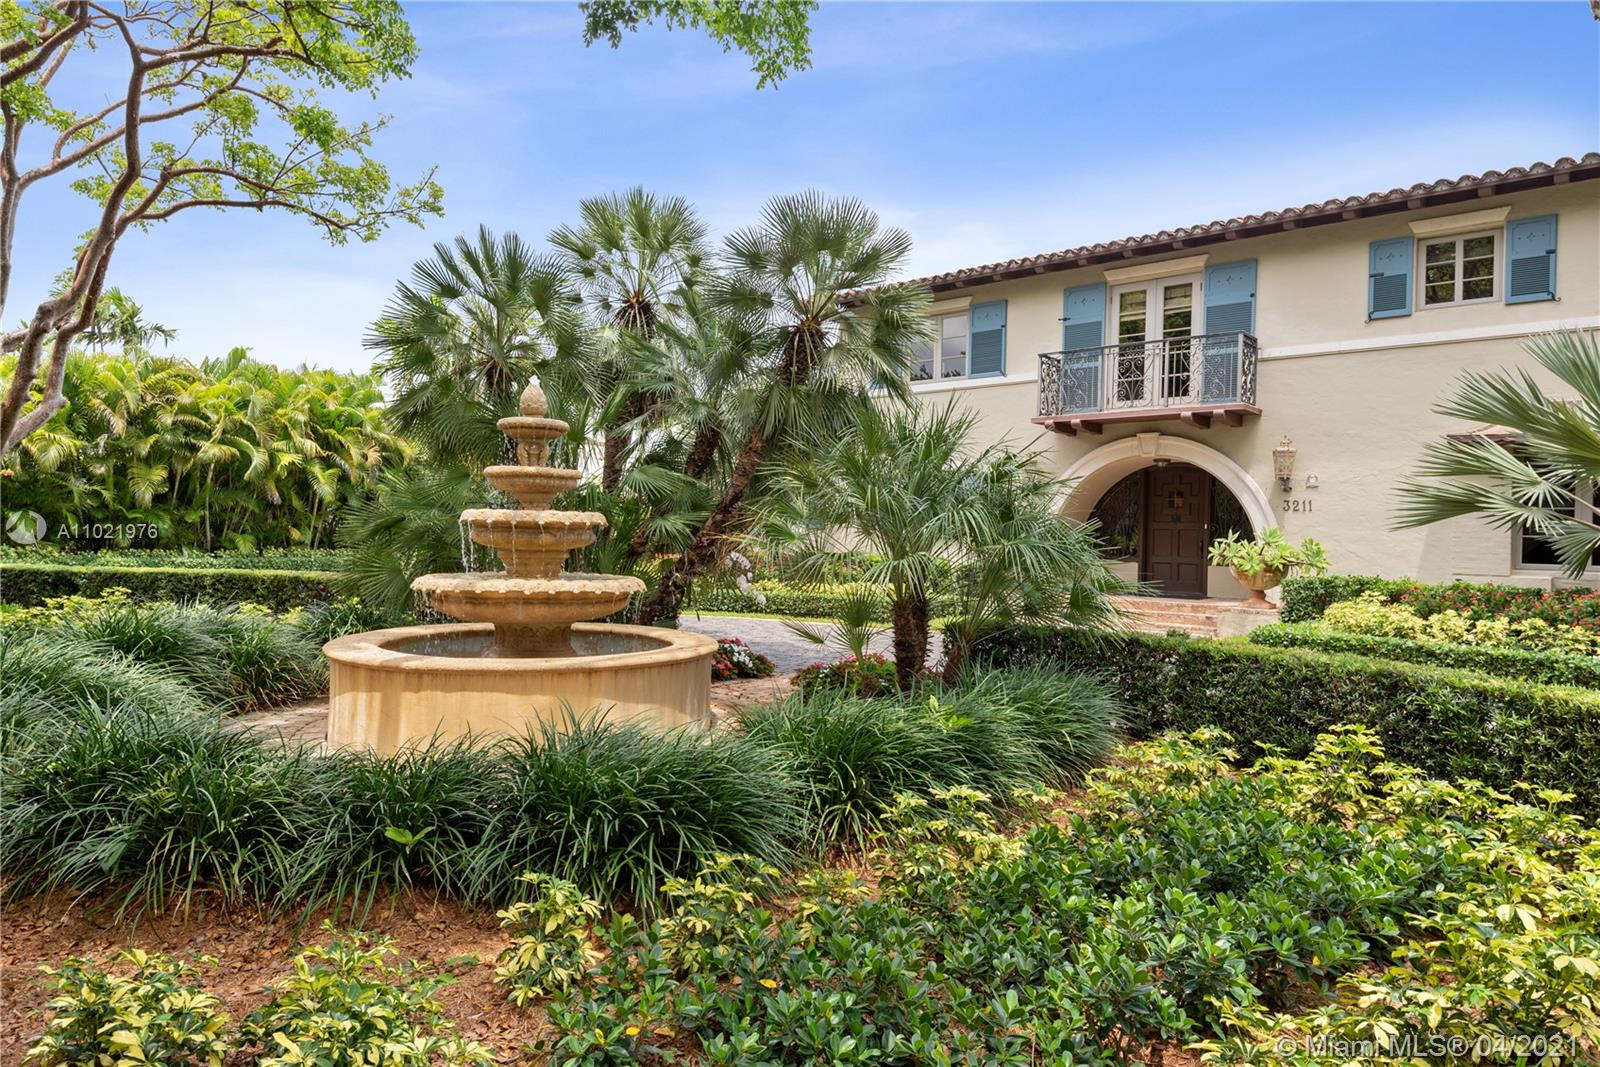 On world-class prestigious Biltmore Golf Course is a beautiful Mediterranean Revival historically designated 9,950 SF adj. estate with meticulously manicured landscaped grounds, mature trees & breathtaking views of the historic Biltmore Hotel. Spectacular curb appeal with cobblestone driveway welcomes  you to an elegant timeless home & its many features; Wine Cellar, Full Bar/onyx counter, Marble & Black Granite flooring. Expansive Chef's kitchen with Christian Clive inspired Cabinetry, Wolf Range & 2 Ovens, Wolf Microwave/Pastry Oven, 2 Sub Zero Fridges, stone floor etc. Covered outdoor kitchen has gas grill, burners, fridge, TV, surround sound. Inviting pool/patio for entertaining & relaxation. Luxurious Master Bdrm/Bath wing. En-suite bedrooms, Come see on iconic tree lined Alhambra!